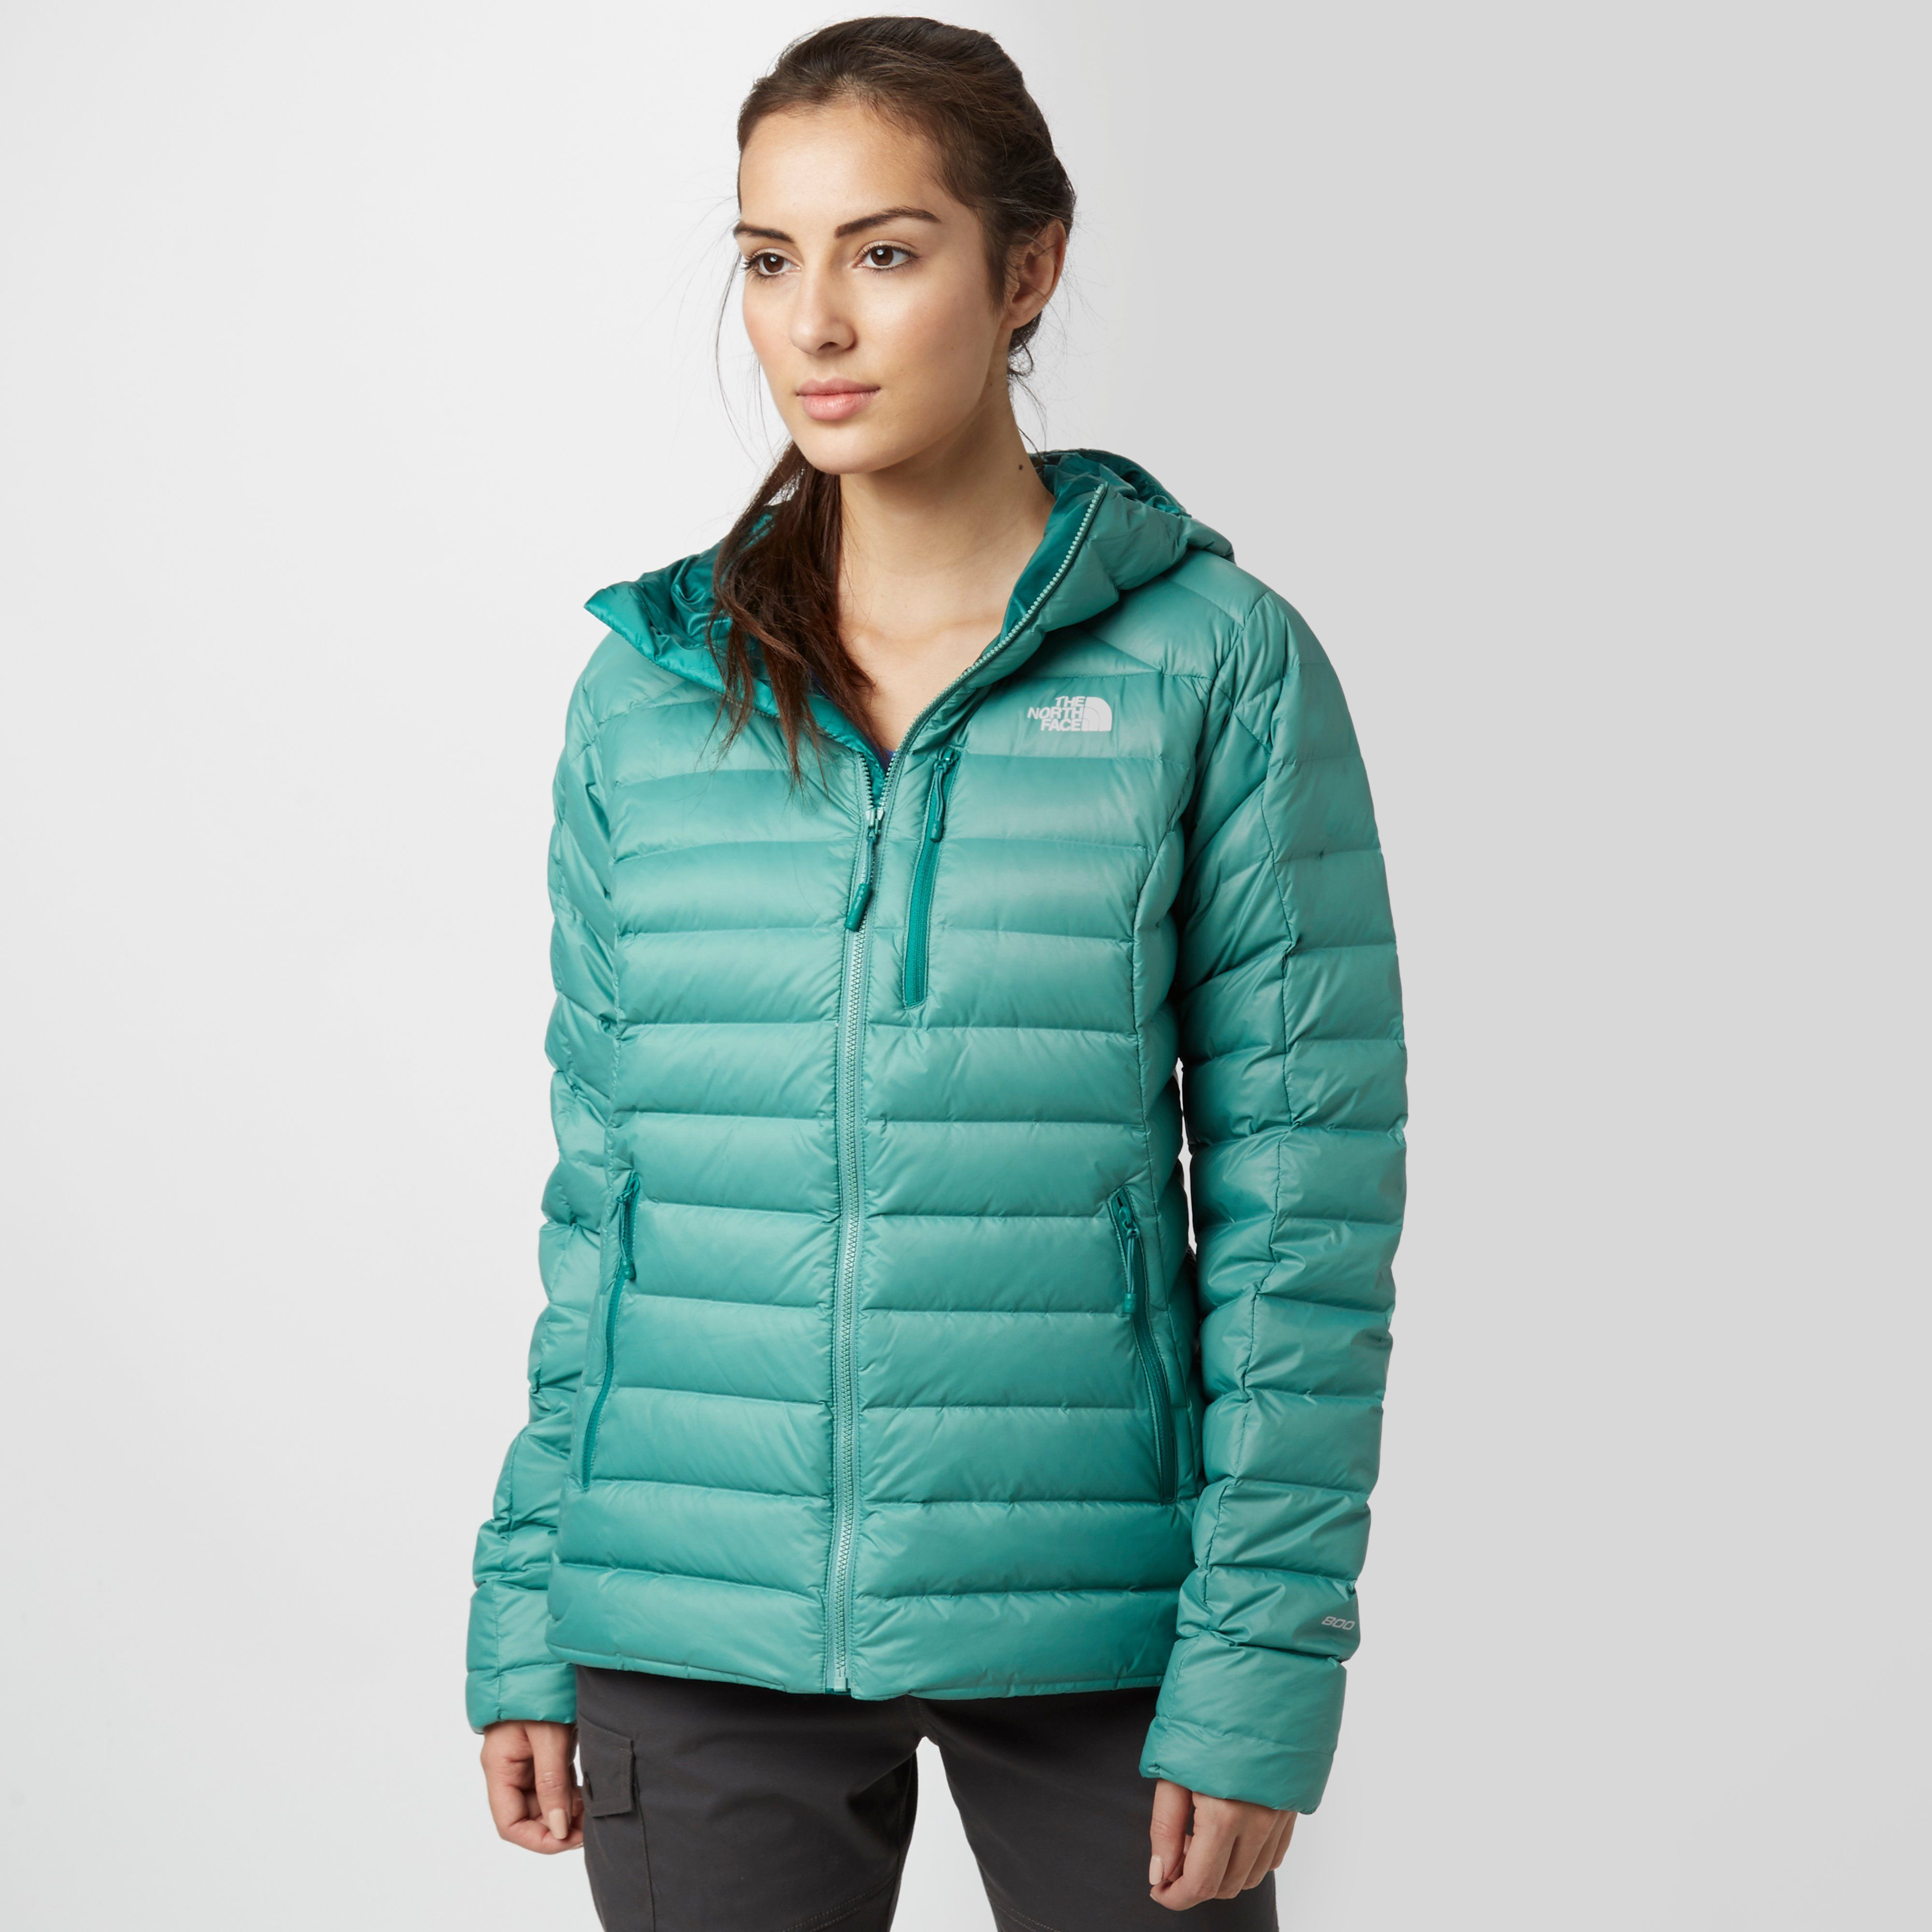 The North Face Women S Morph Down Hooded Jacket Shop For Clothing Footwear Accessories North Face Women Jackets Hooded Jacket [ 4000 x 4000 Pixel ]